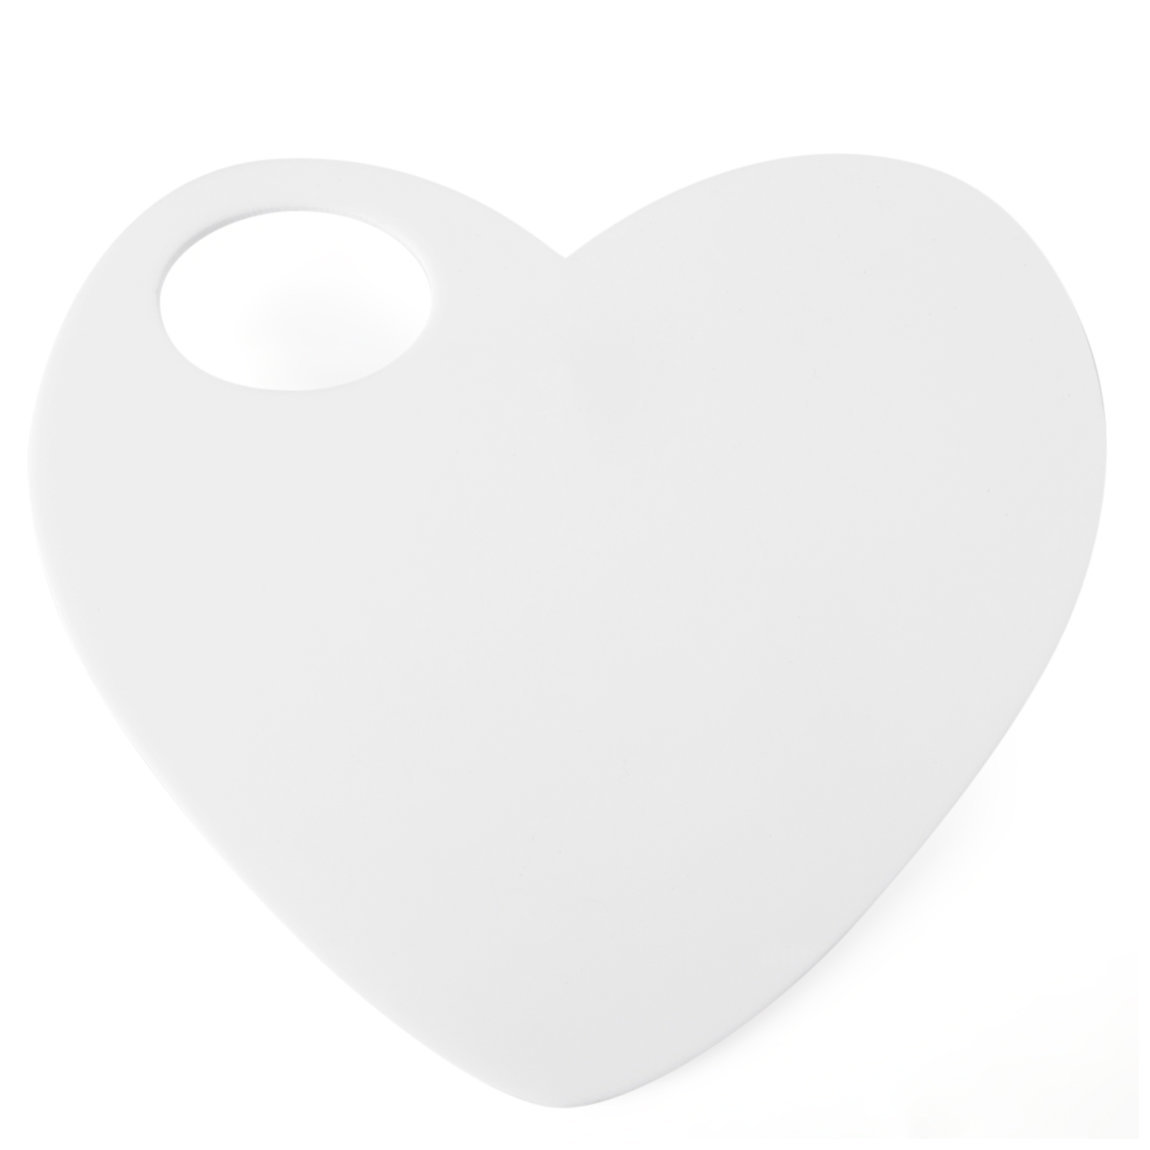 Paw Palette Luv Raw Palette White product swatch.